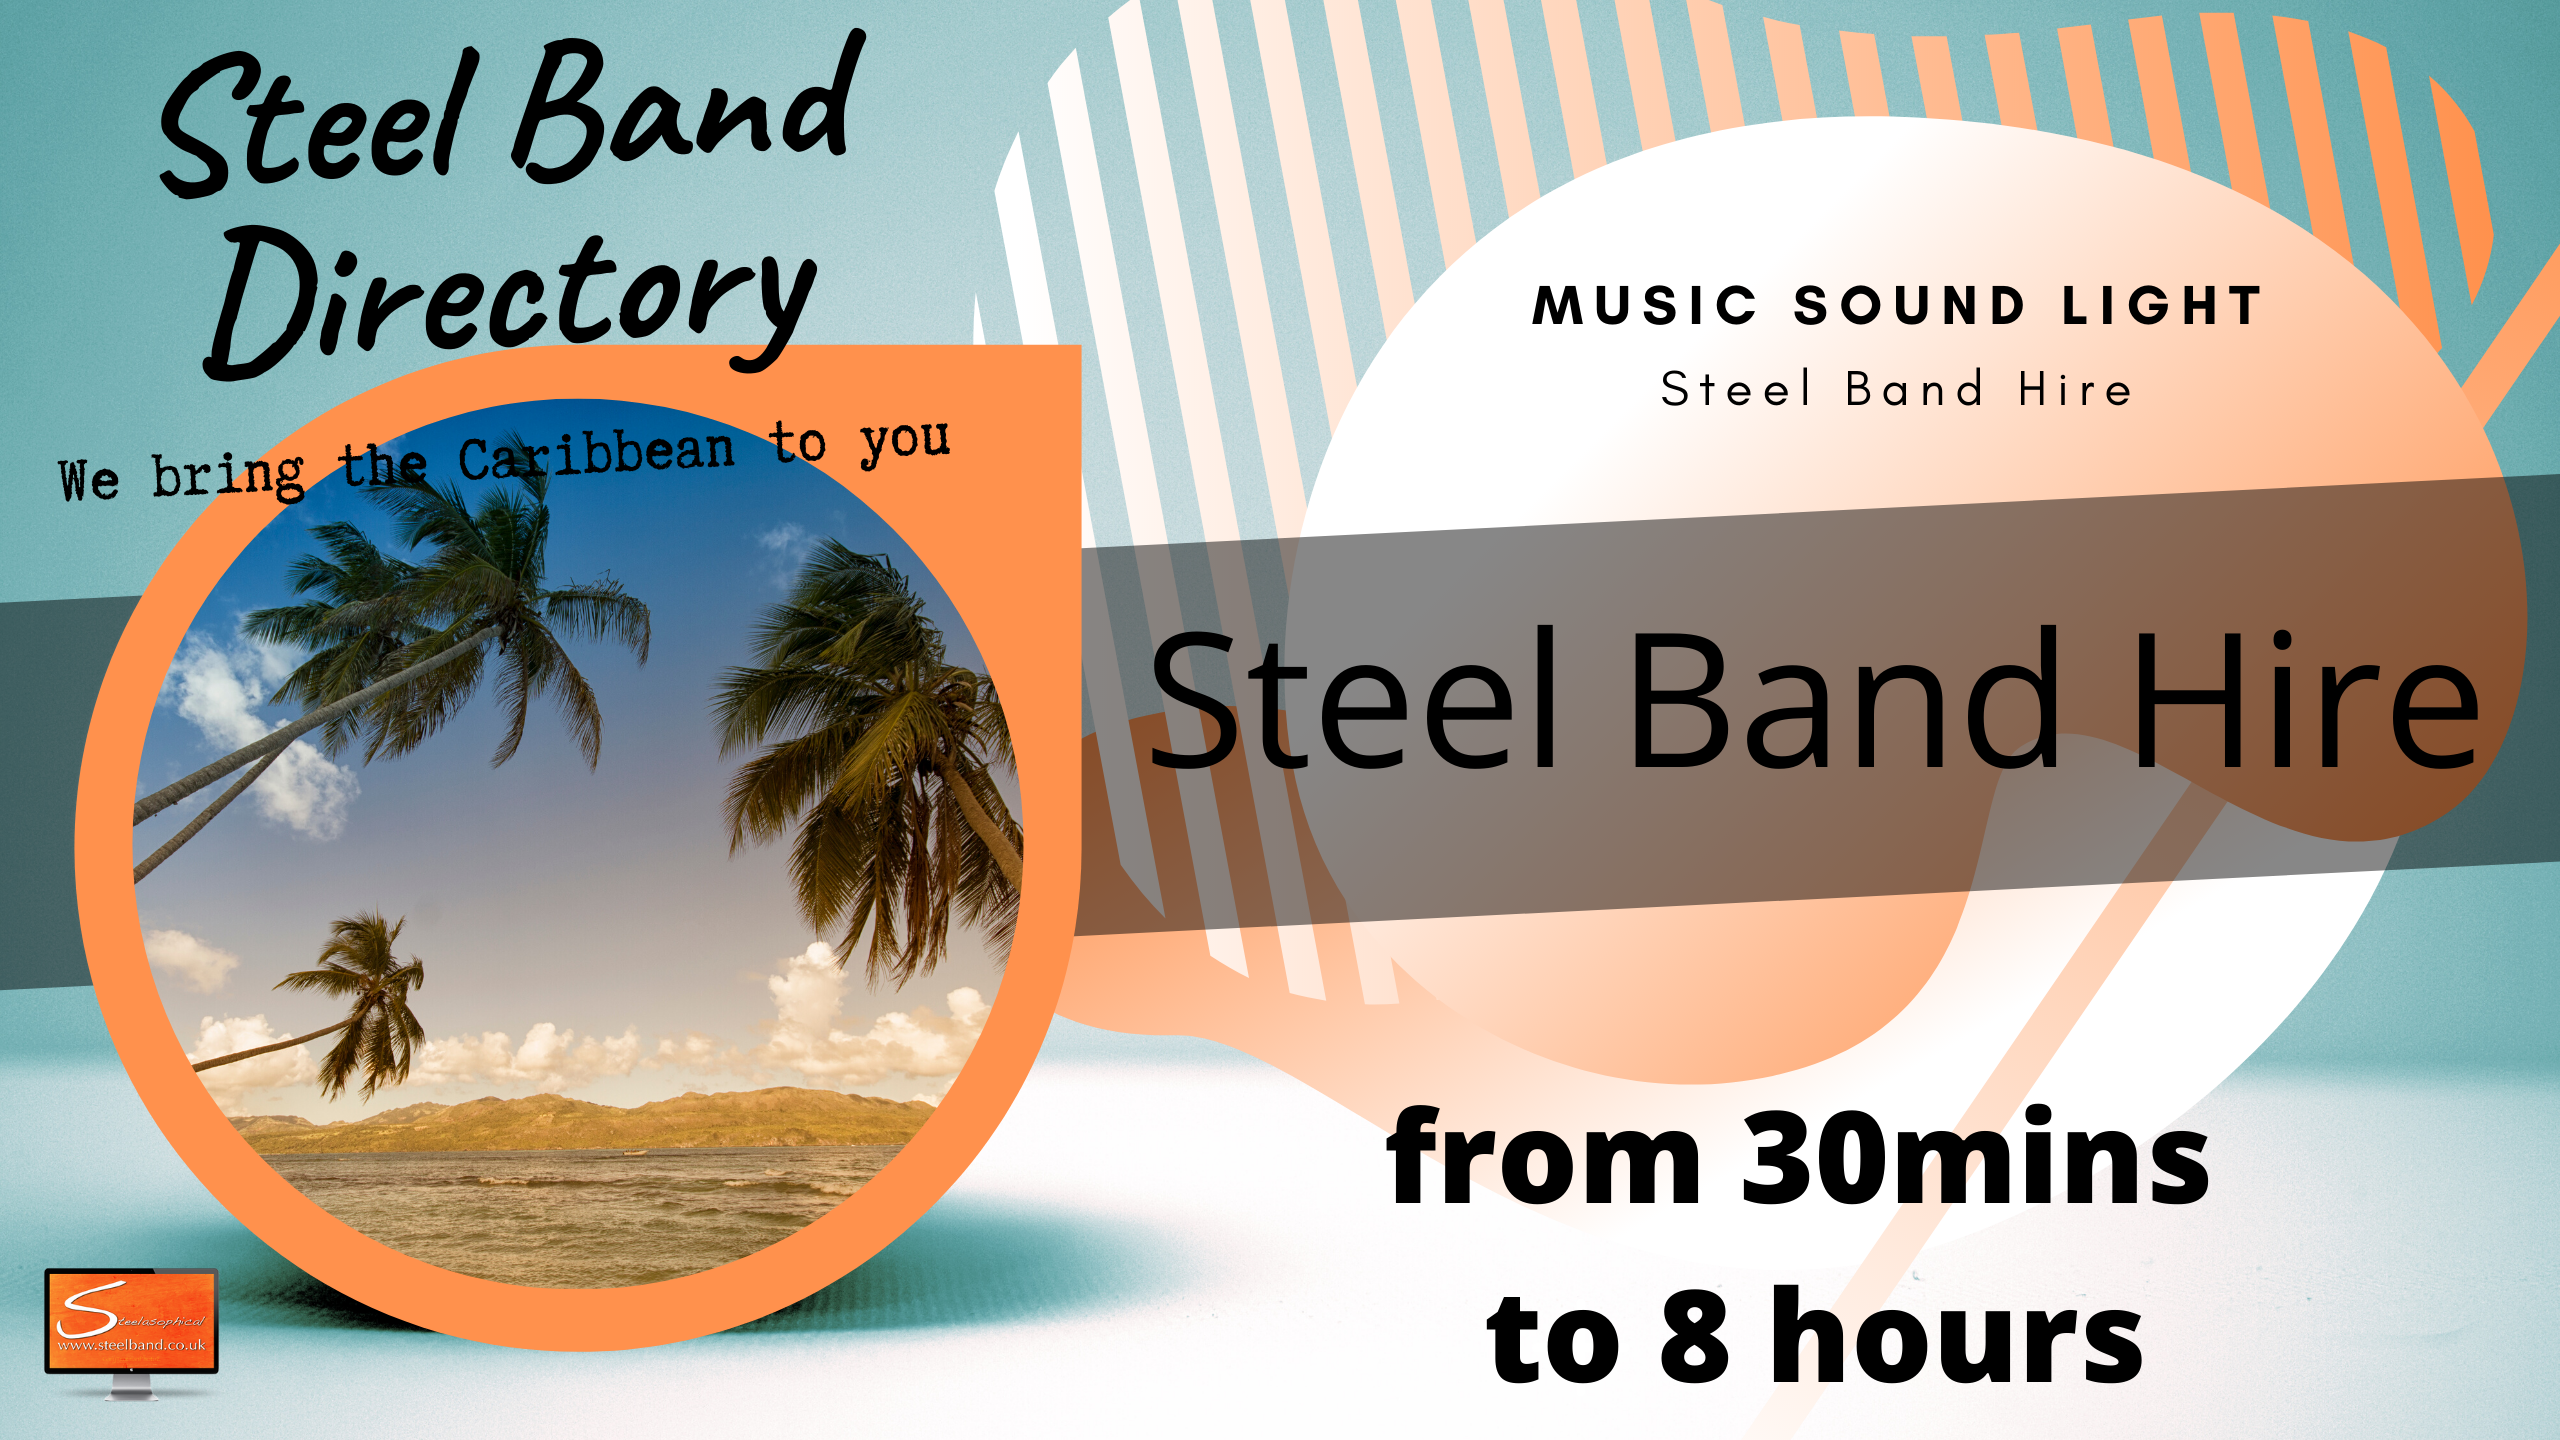 Find Steel band near me uk 1234